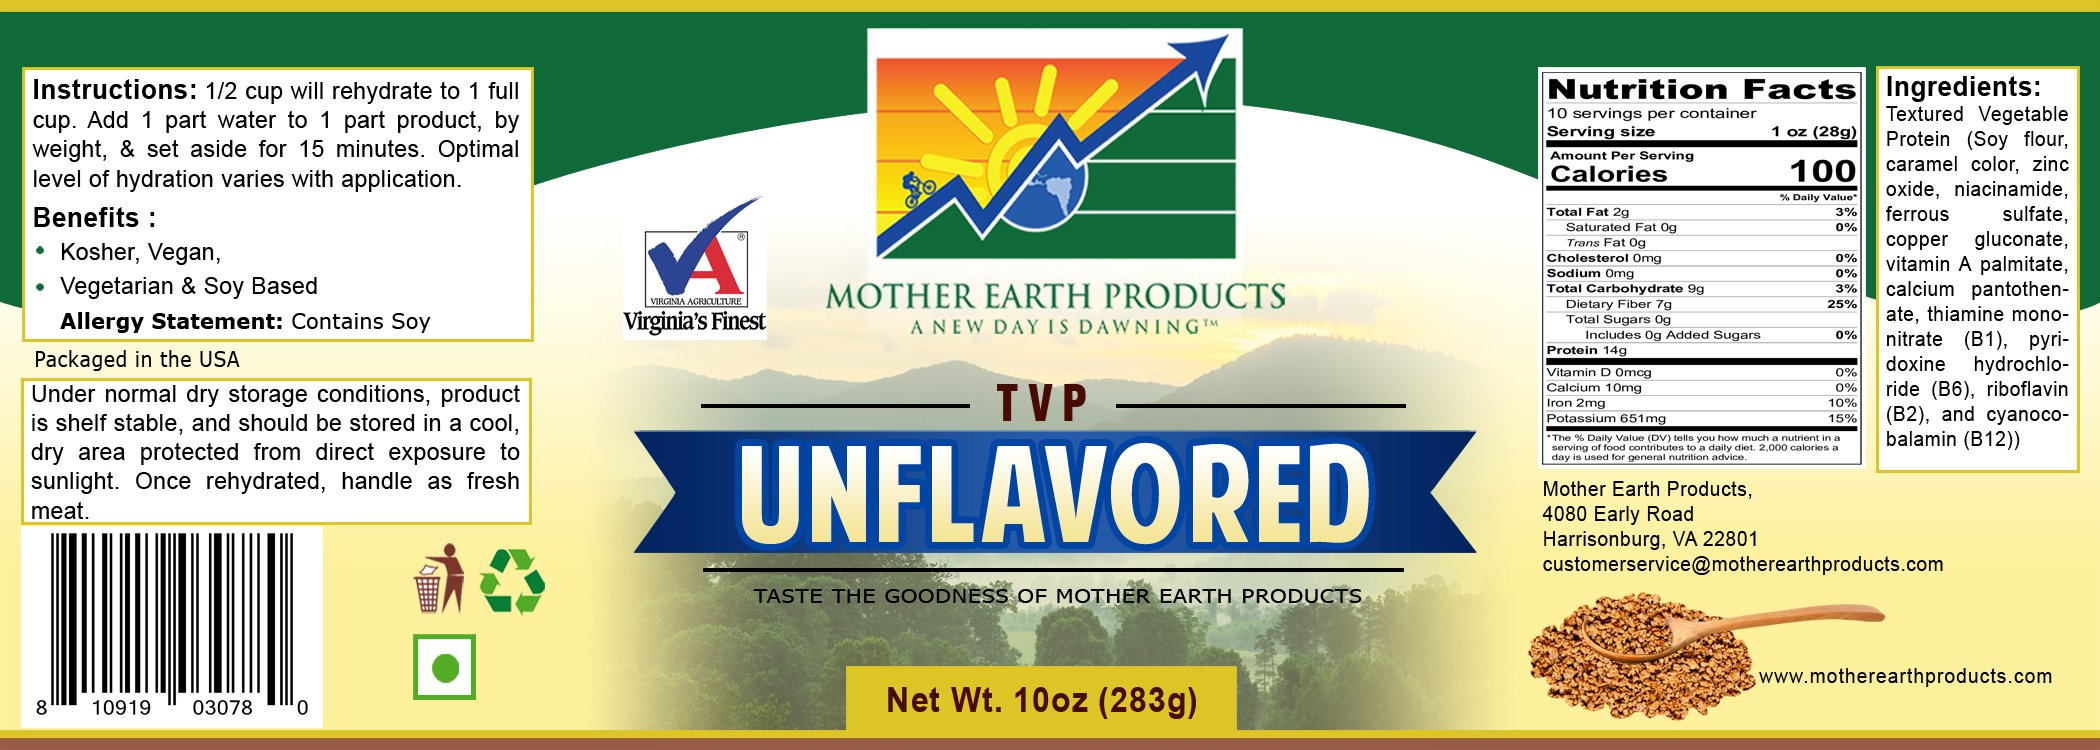 Mother Earth Products Textured Vegetable Protein Unflavored, Quart Jar, 10 oz